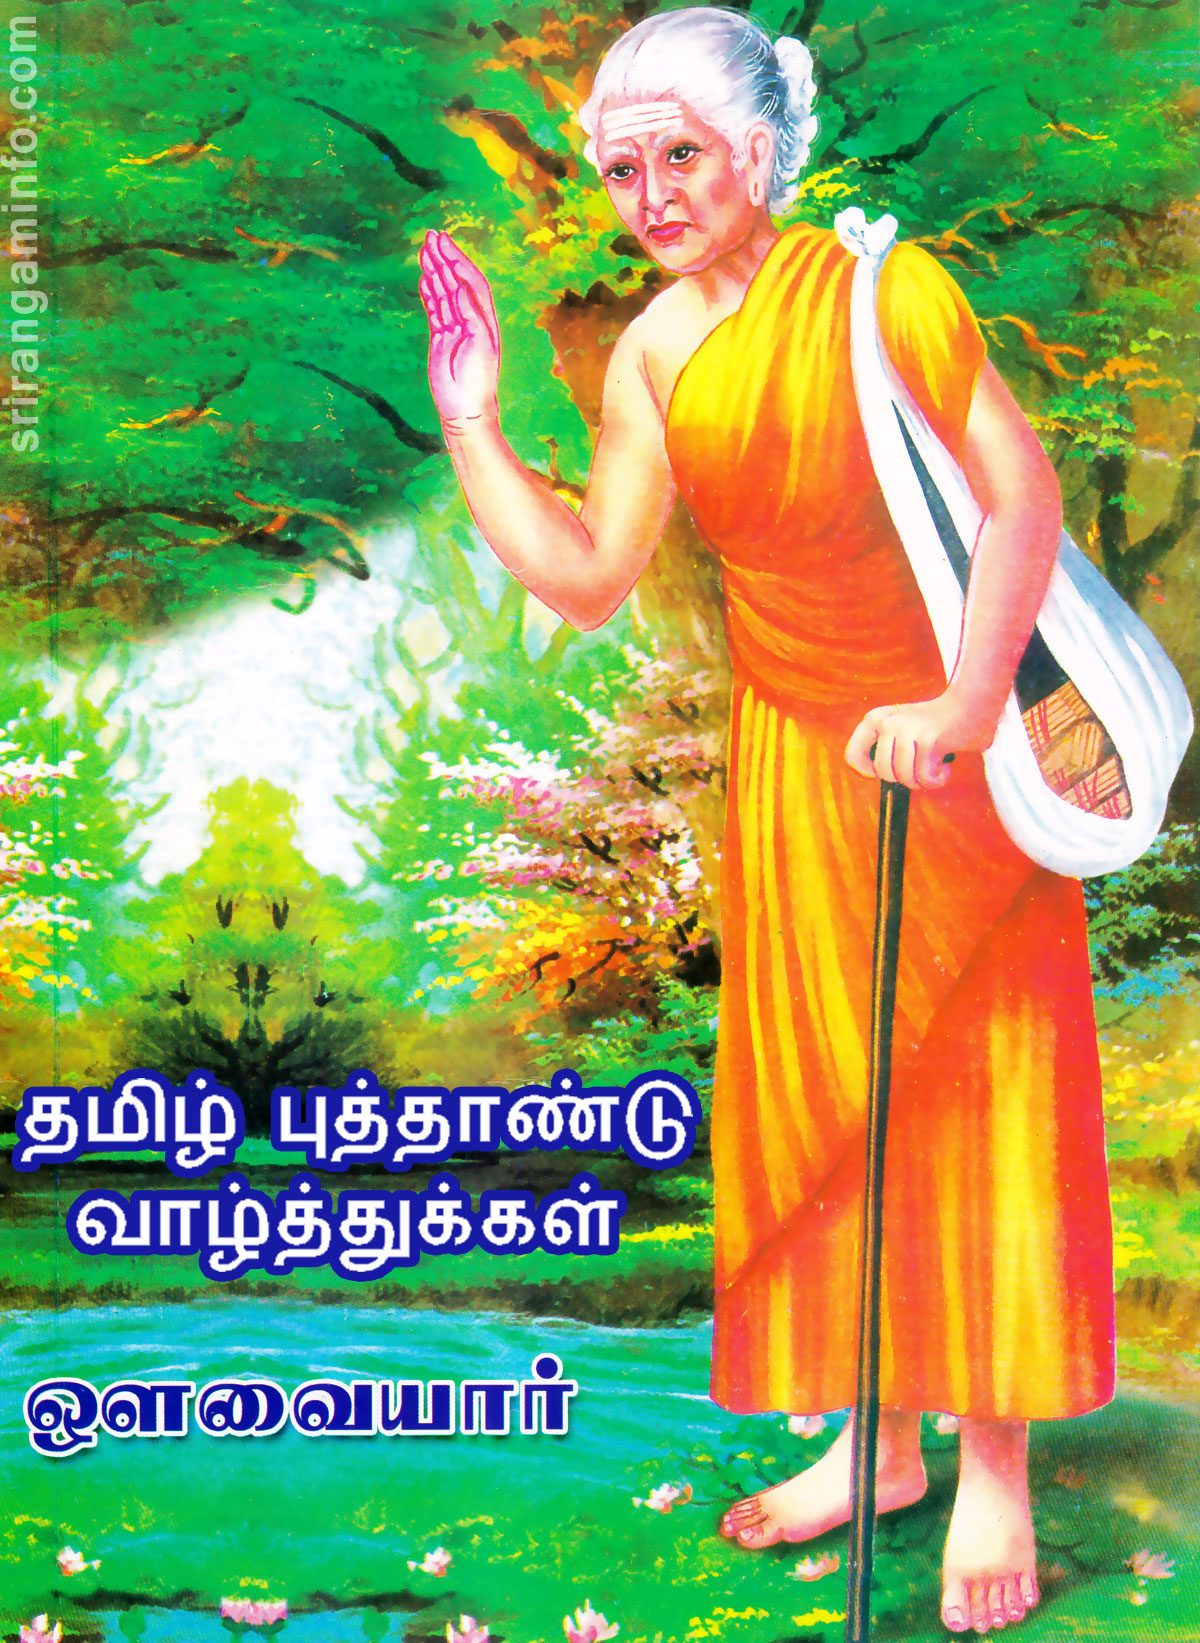 tamil new year greetings